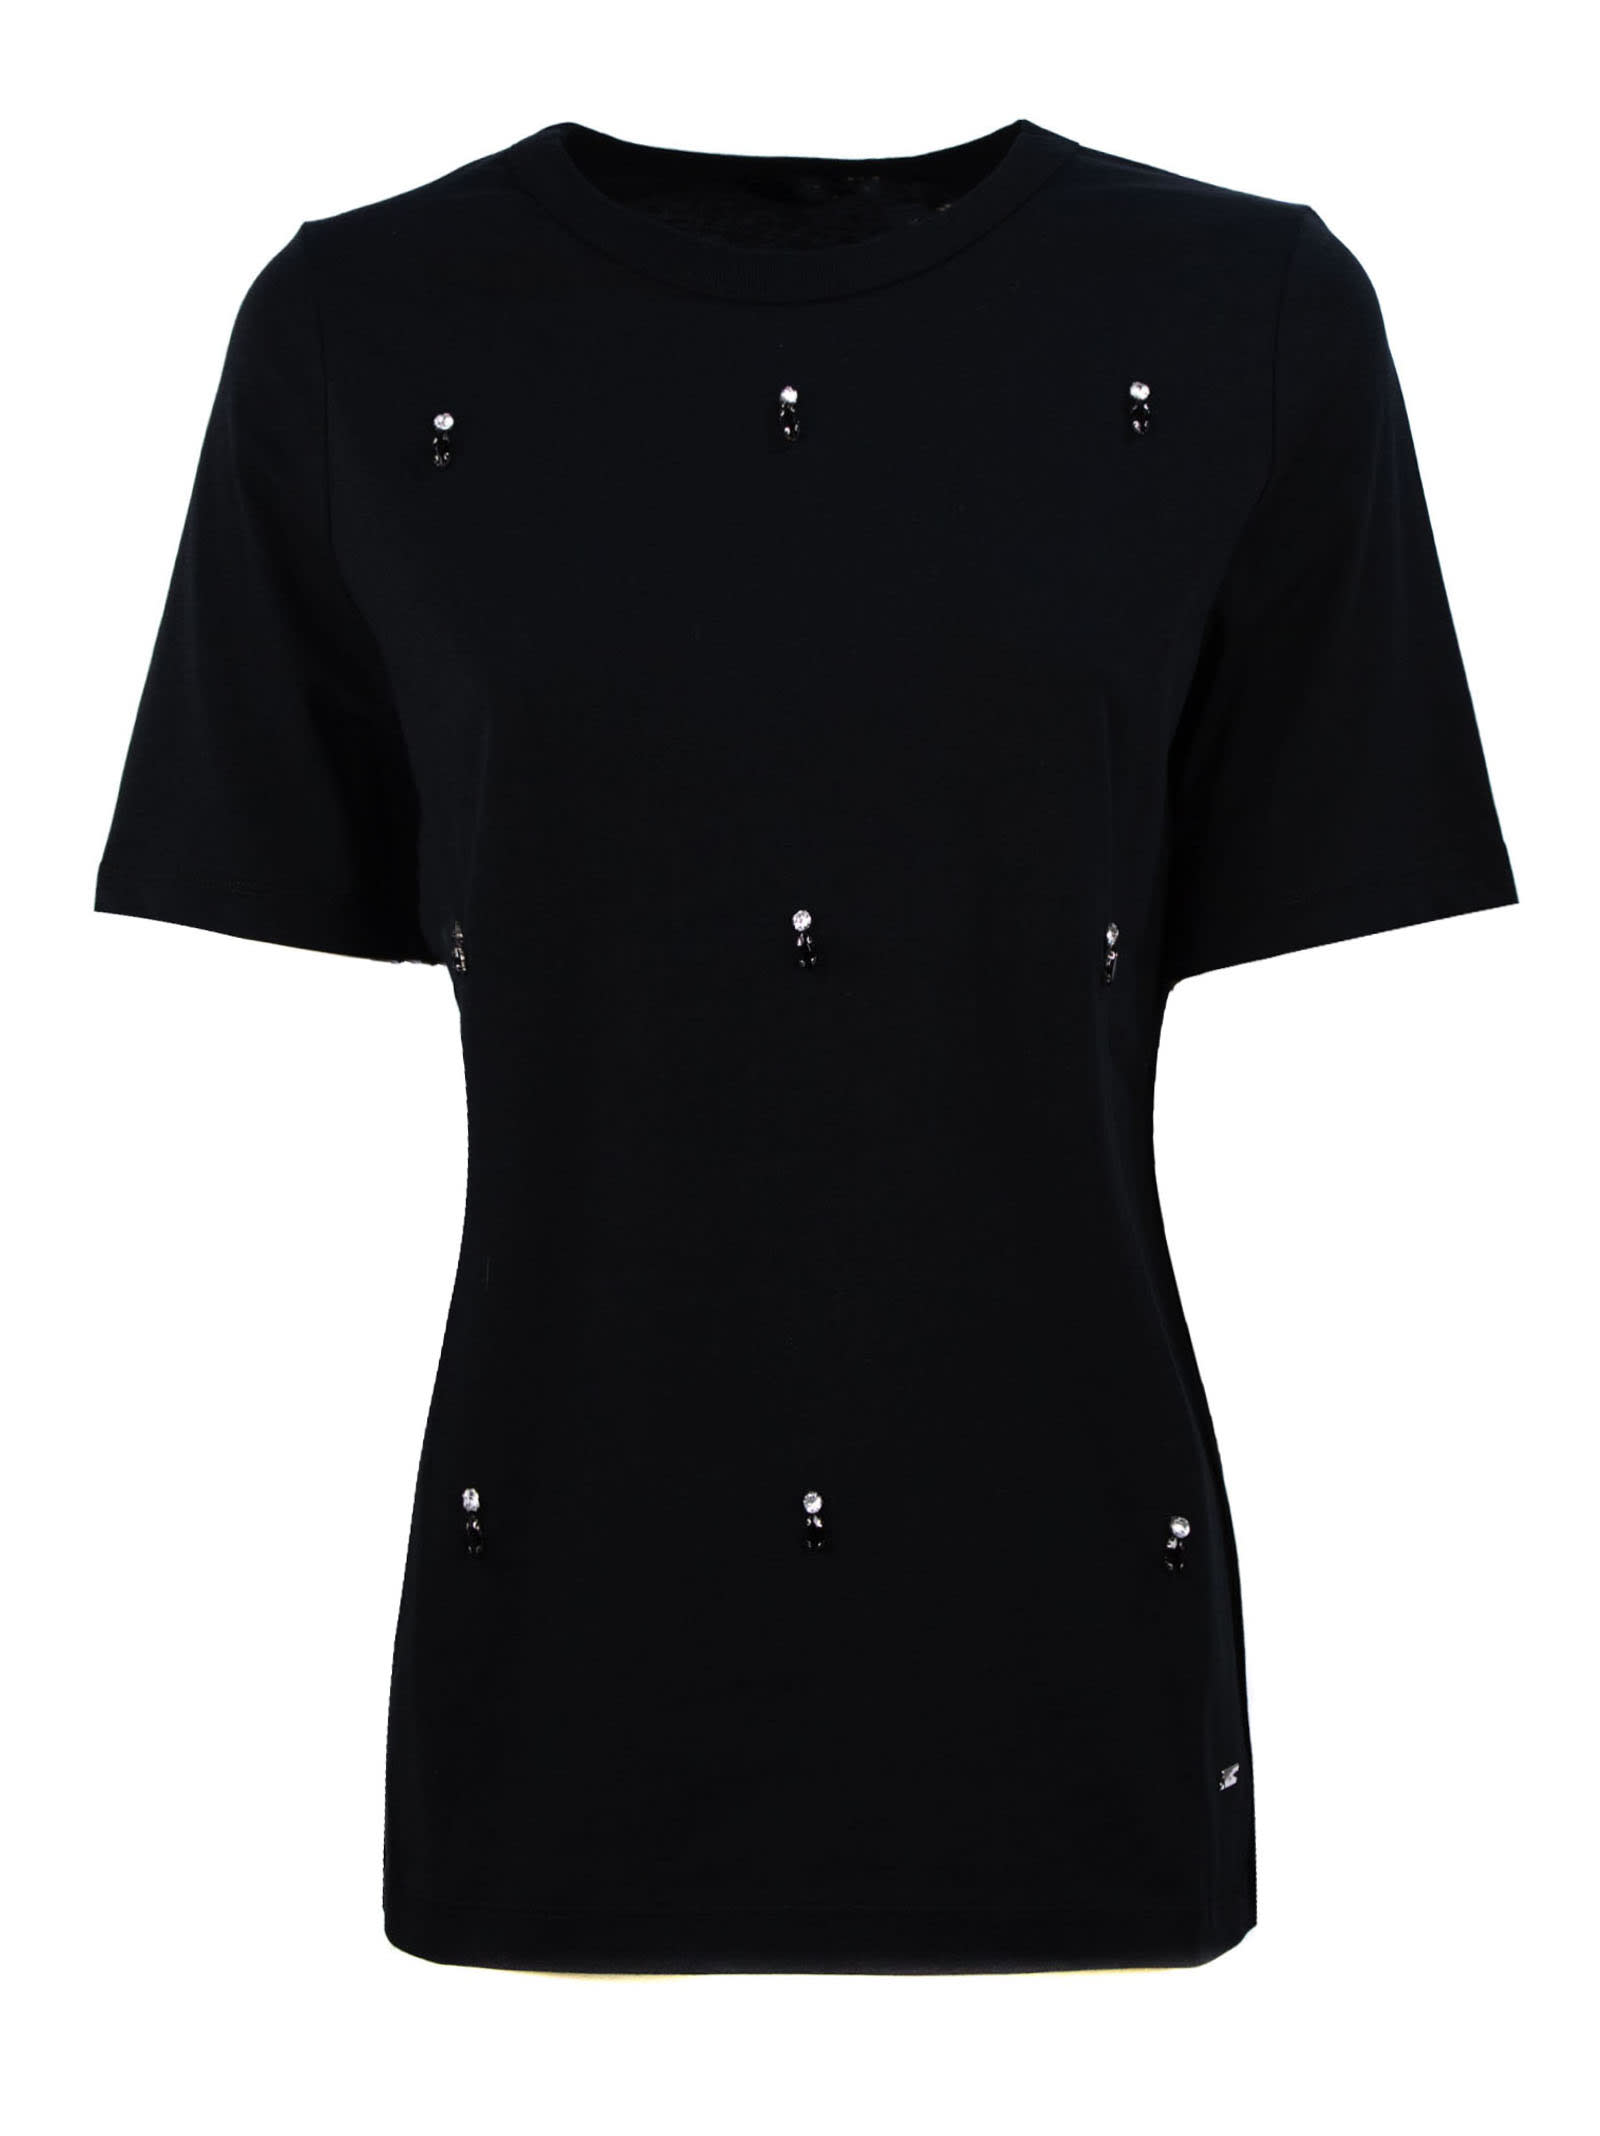 Fay Jewel T-shirt In Black Cotton